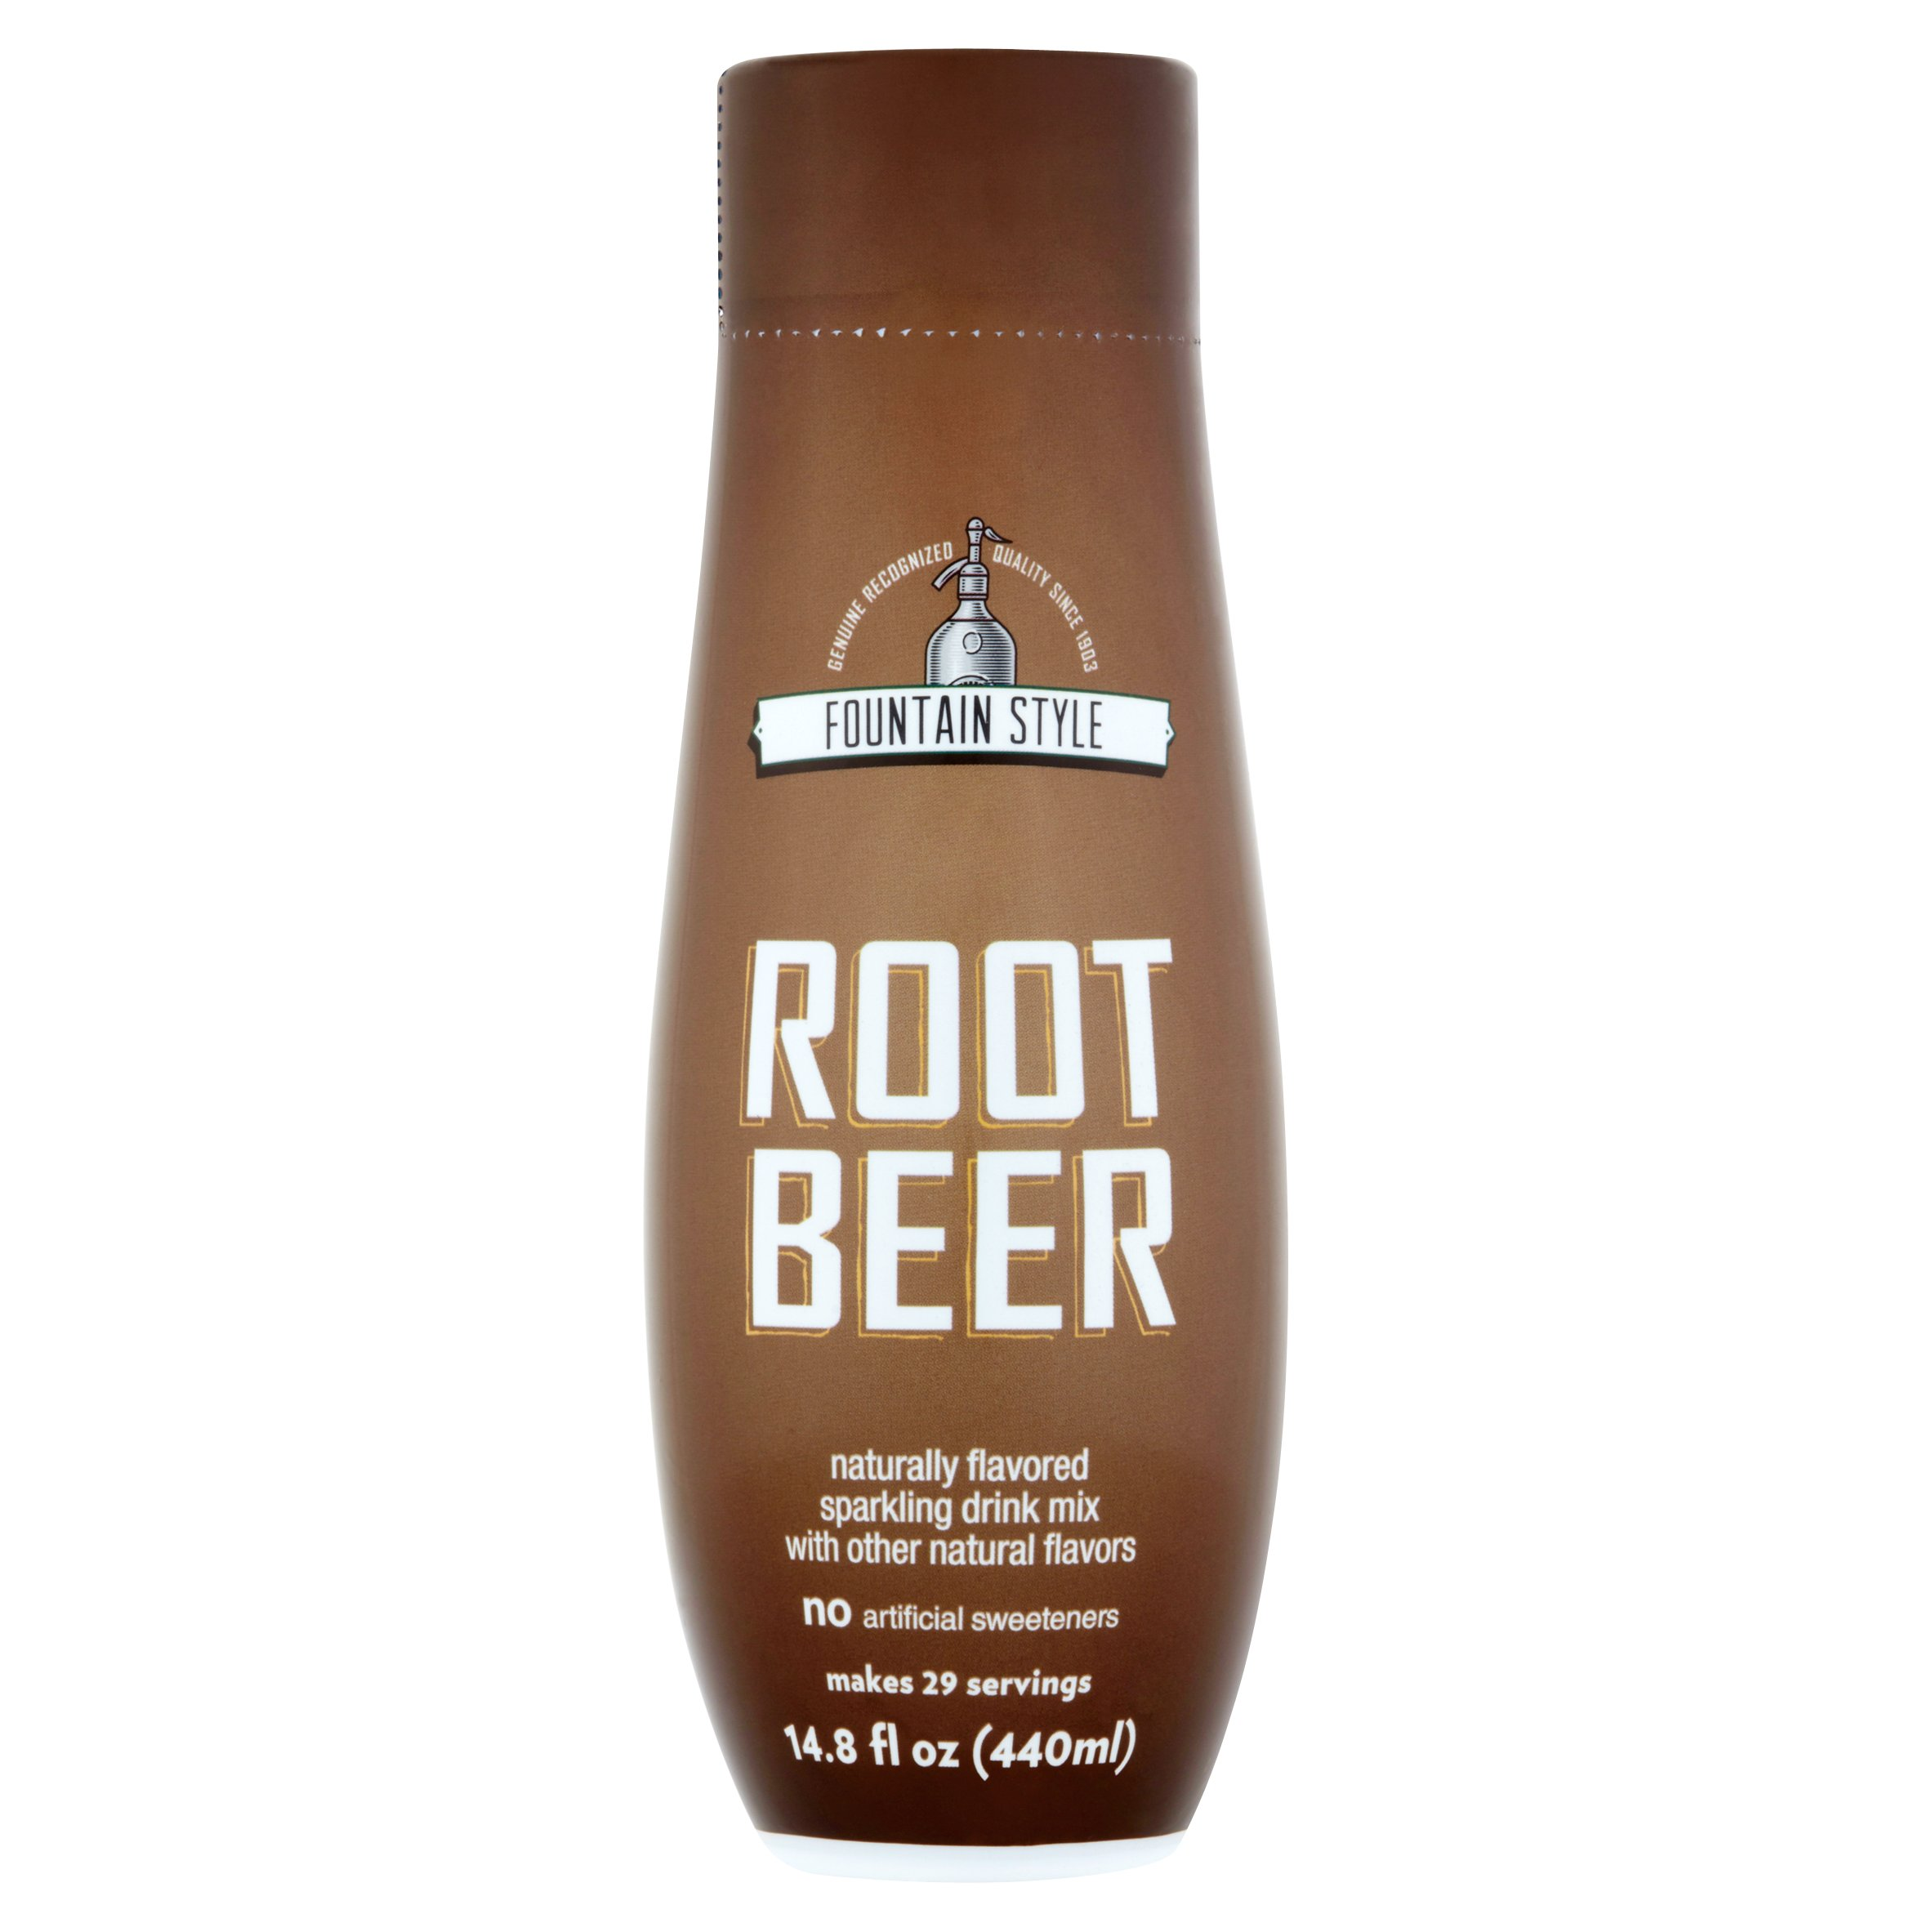 SodaStream Fountain Style Root Beer Sparkling Drink Mix, 440ml